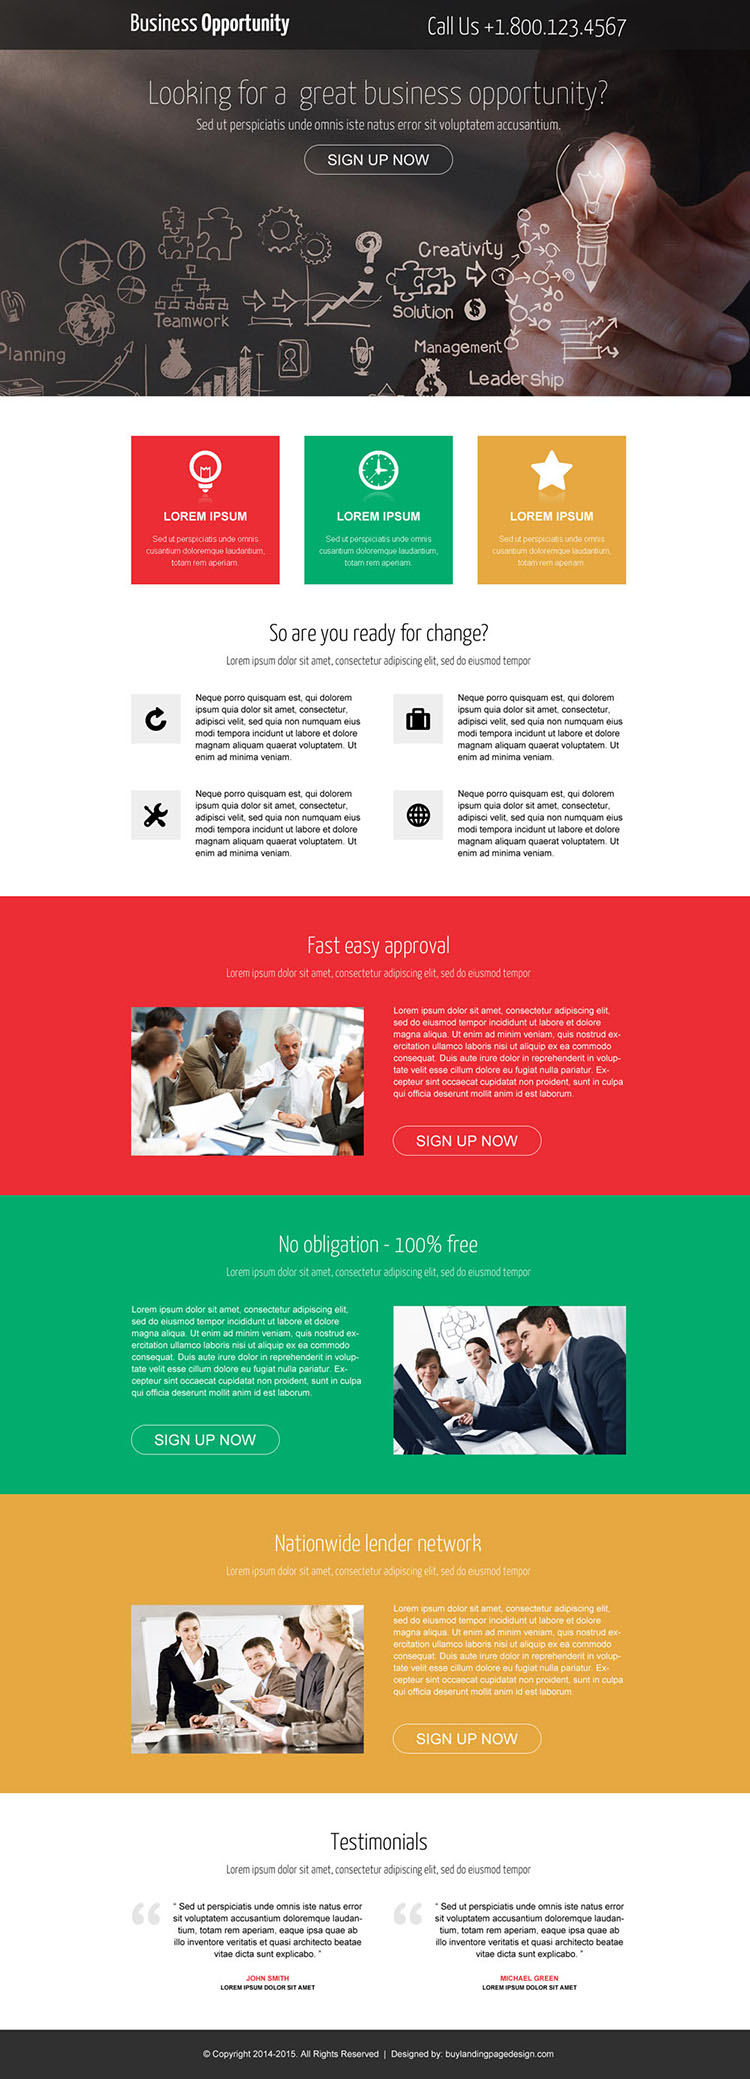 great business opportunity call to action landing page design